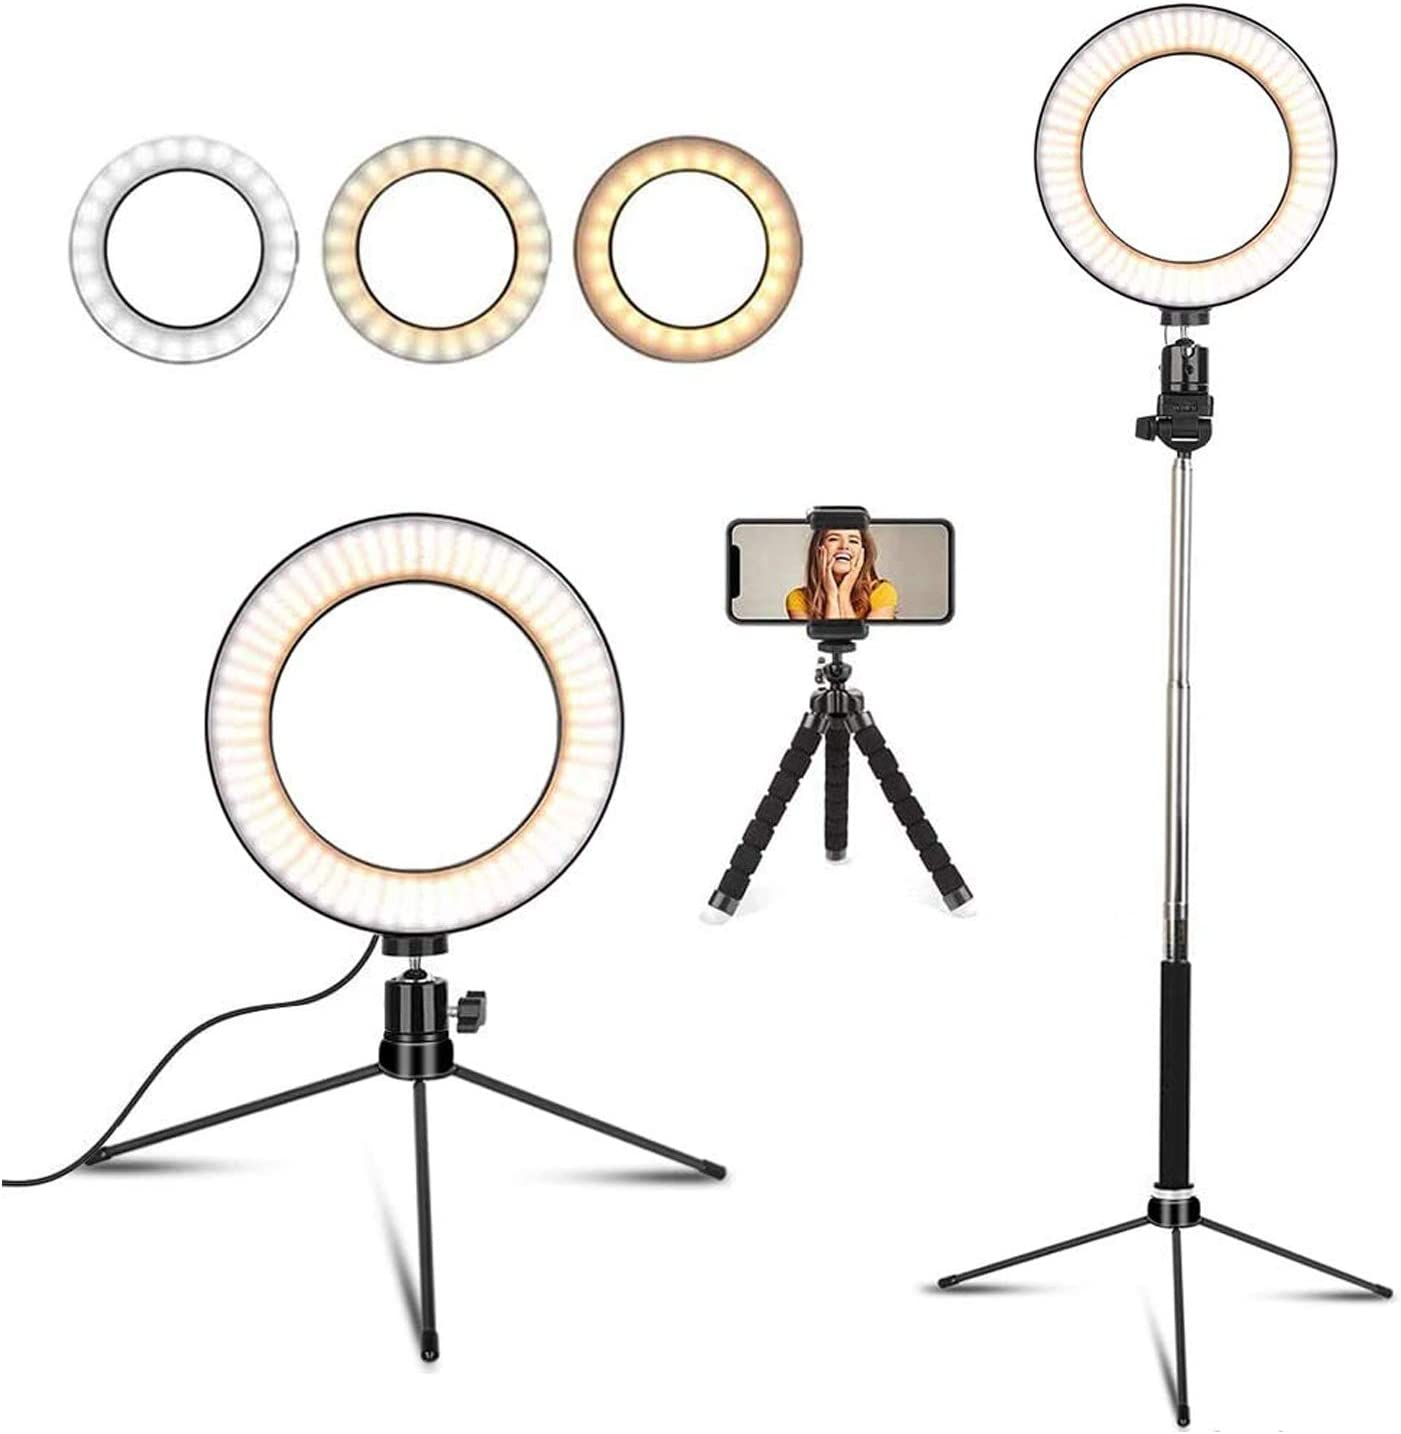 FGAITH Ring Lighting Floor Fill Light Makeup Mirror Light Photography Light Professional Flash Bracket Lighting Multifunction